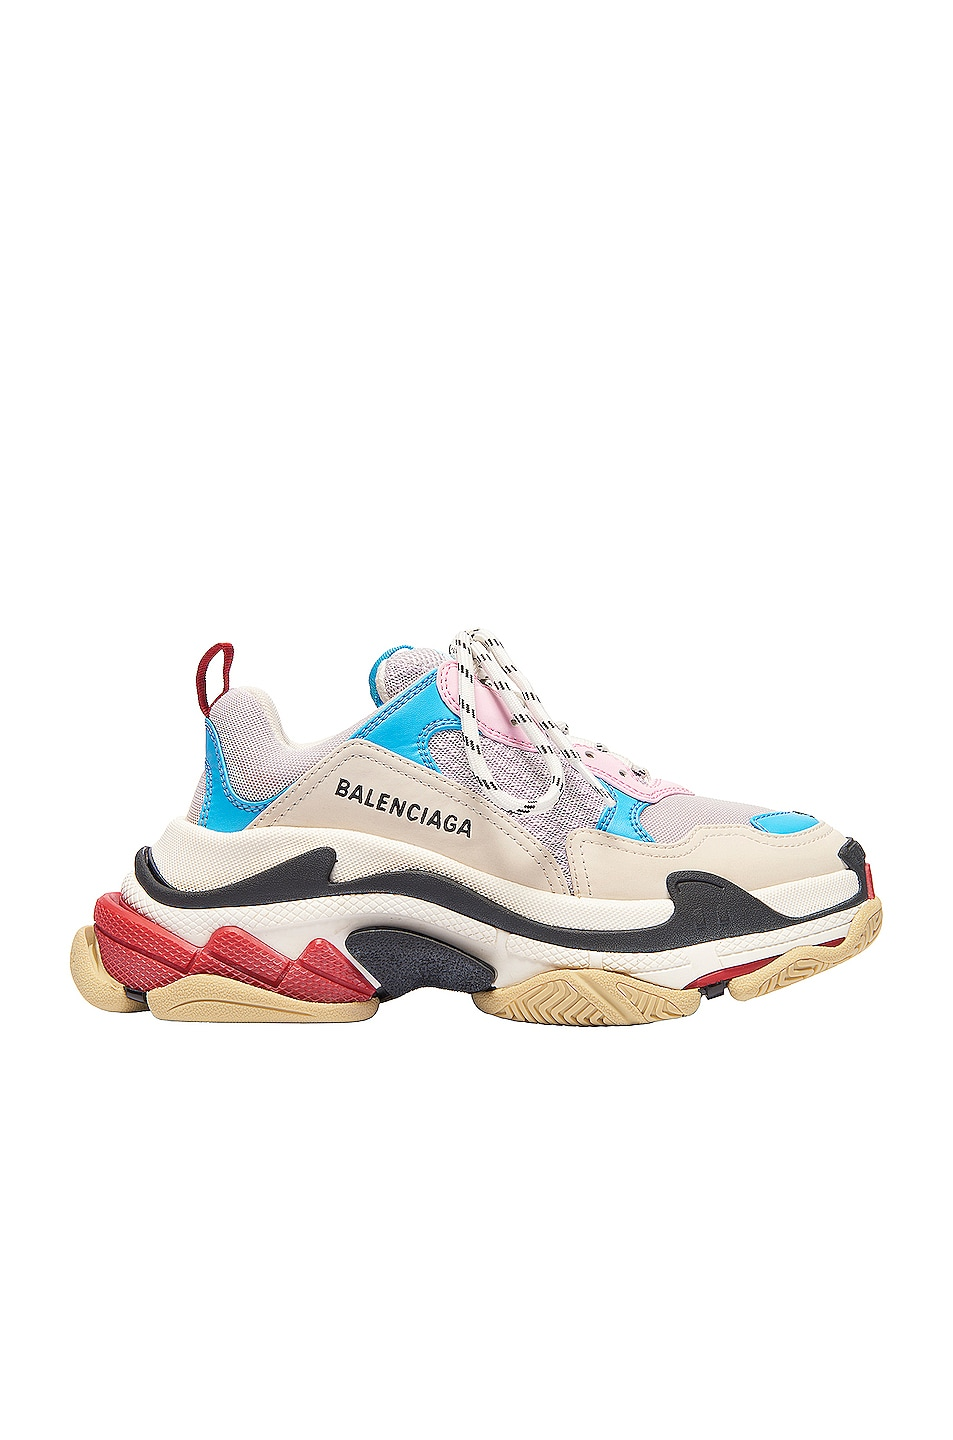 Image 1 of Balenciaga Triple S Sneakers in White & Blue